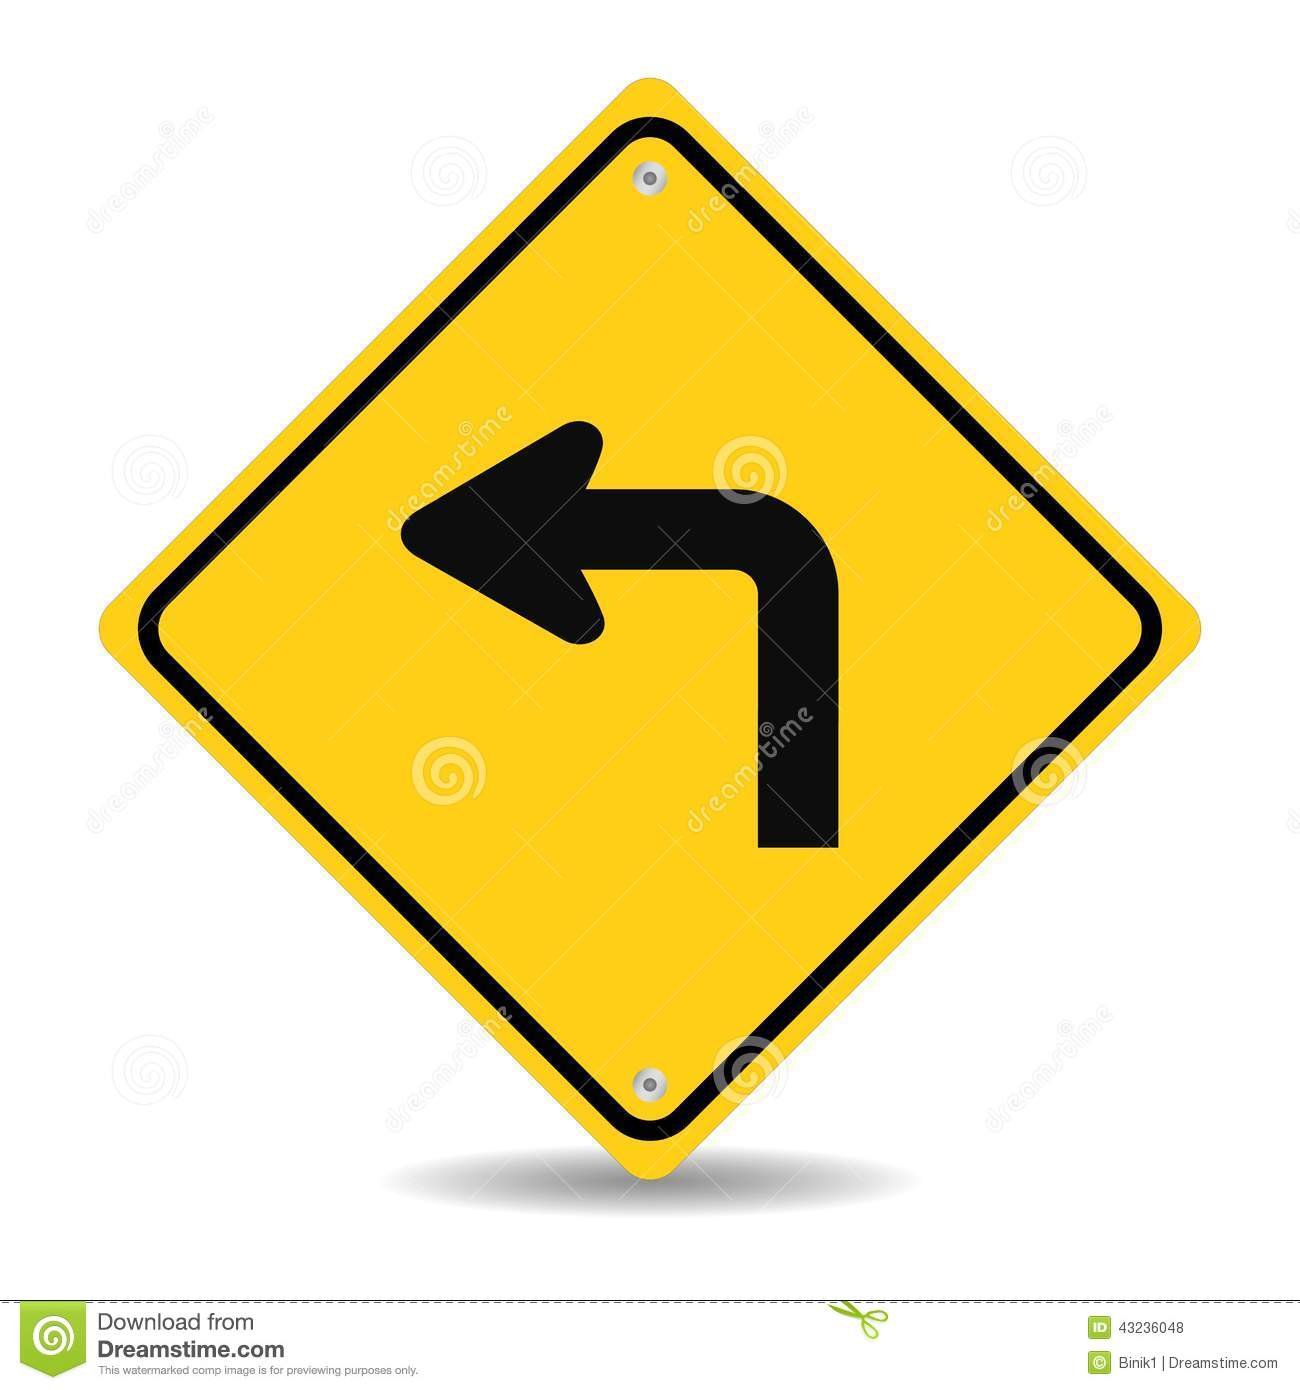 Turn left traffic sign